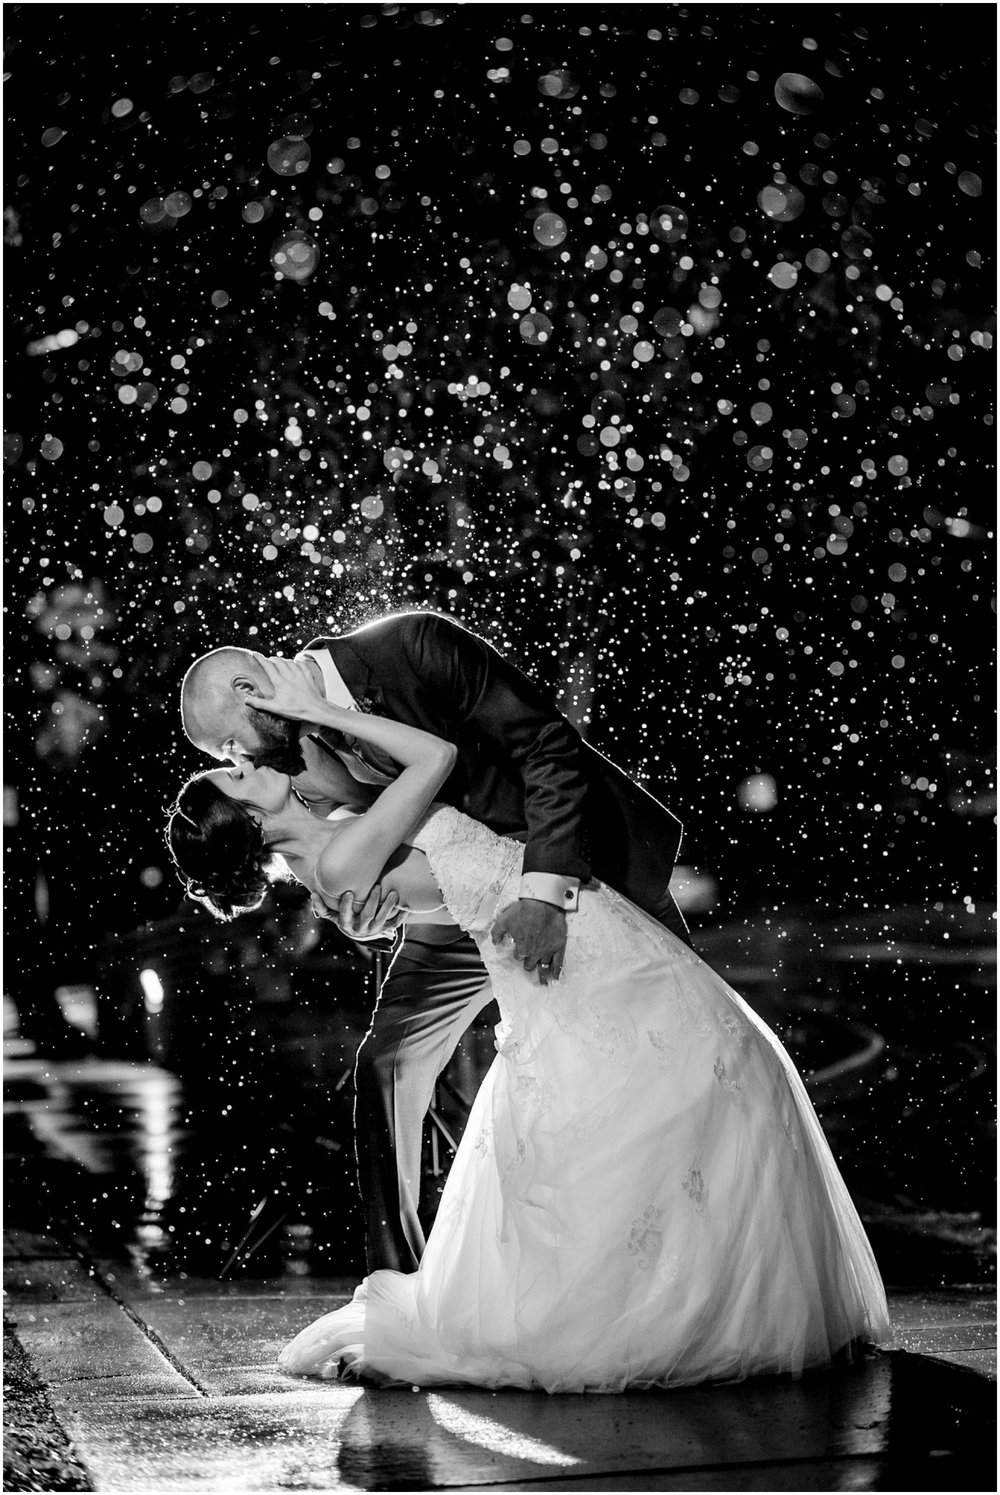 150-Boulder-Colorado-Fall-wedding-photography-king-bw.jpg